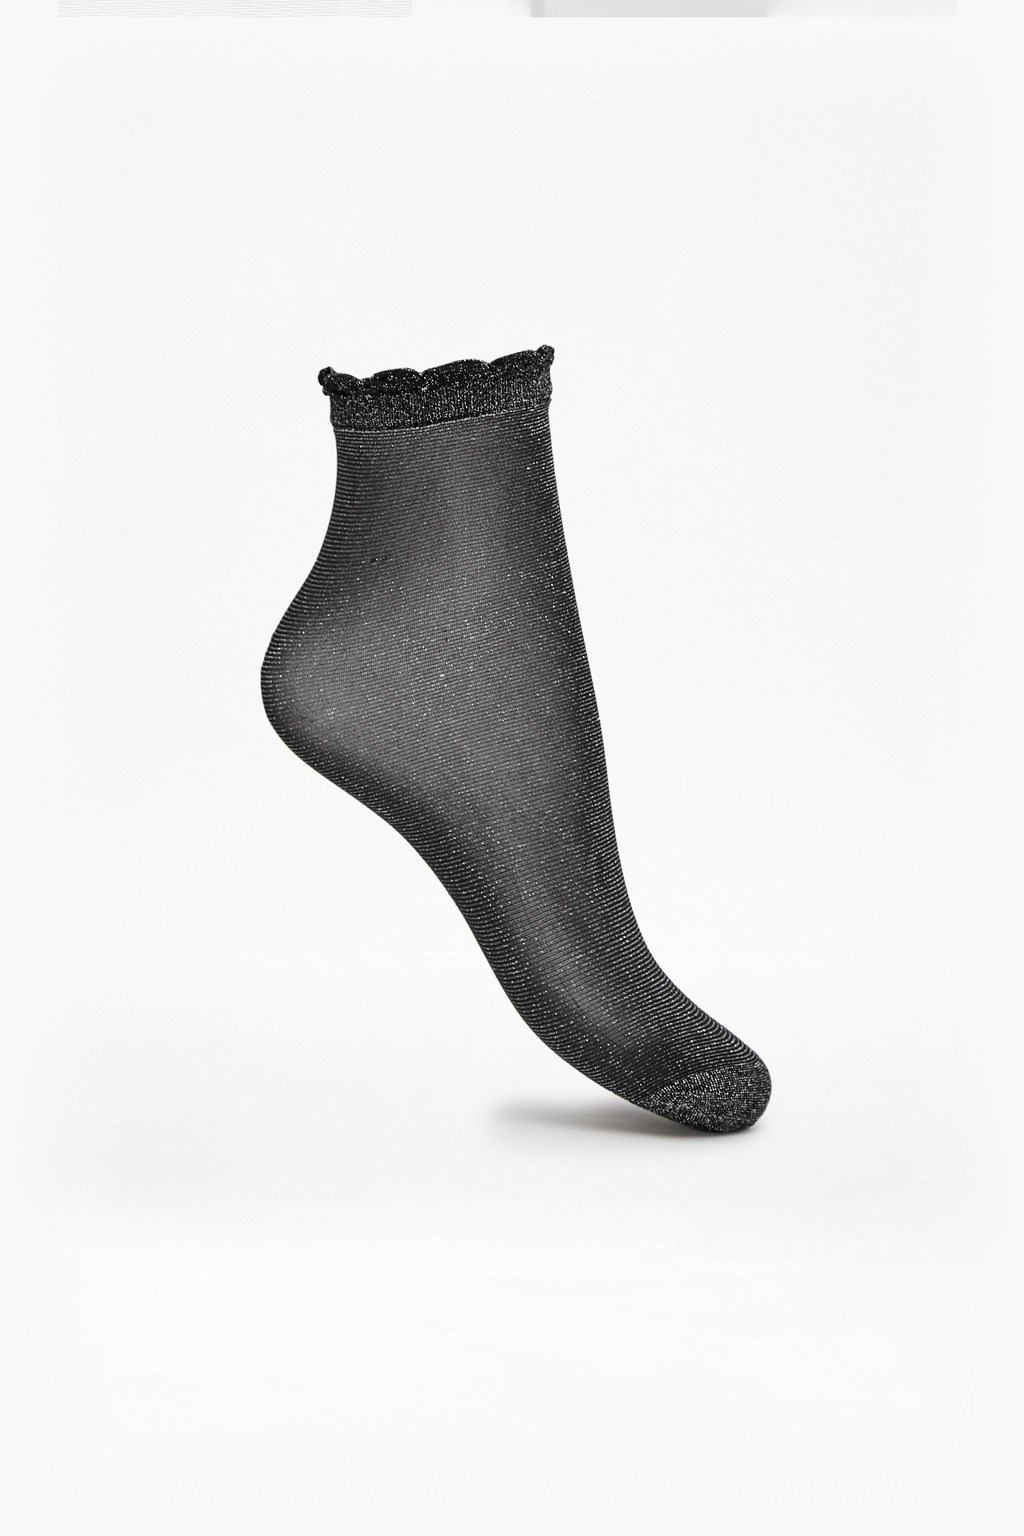 Lola Lurex Pop Socks